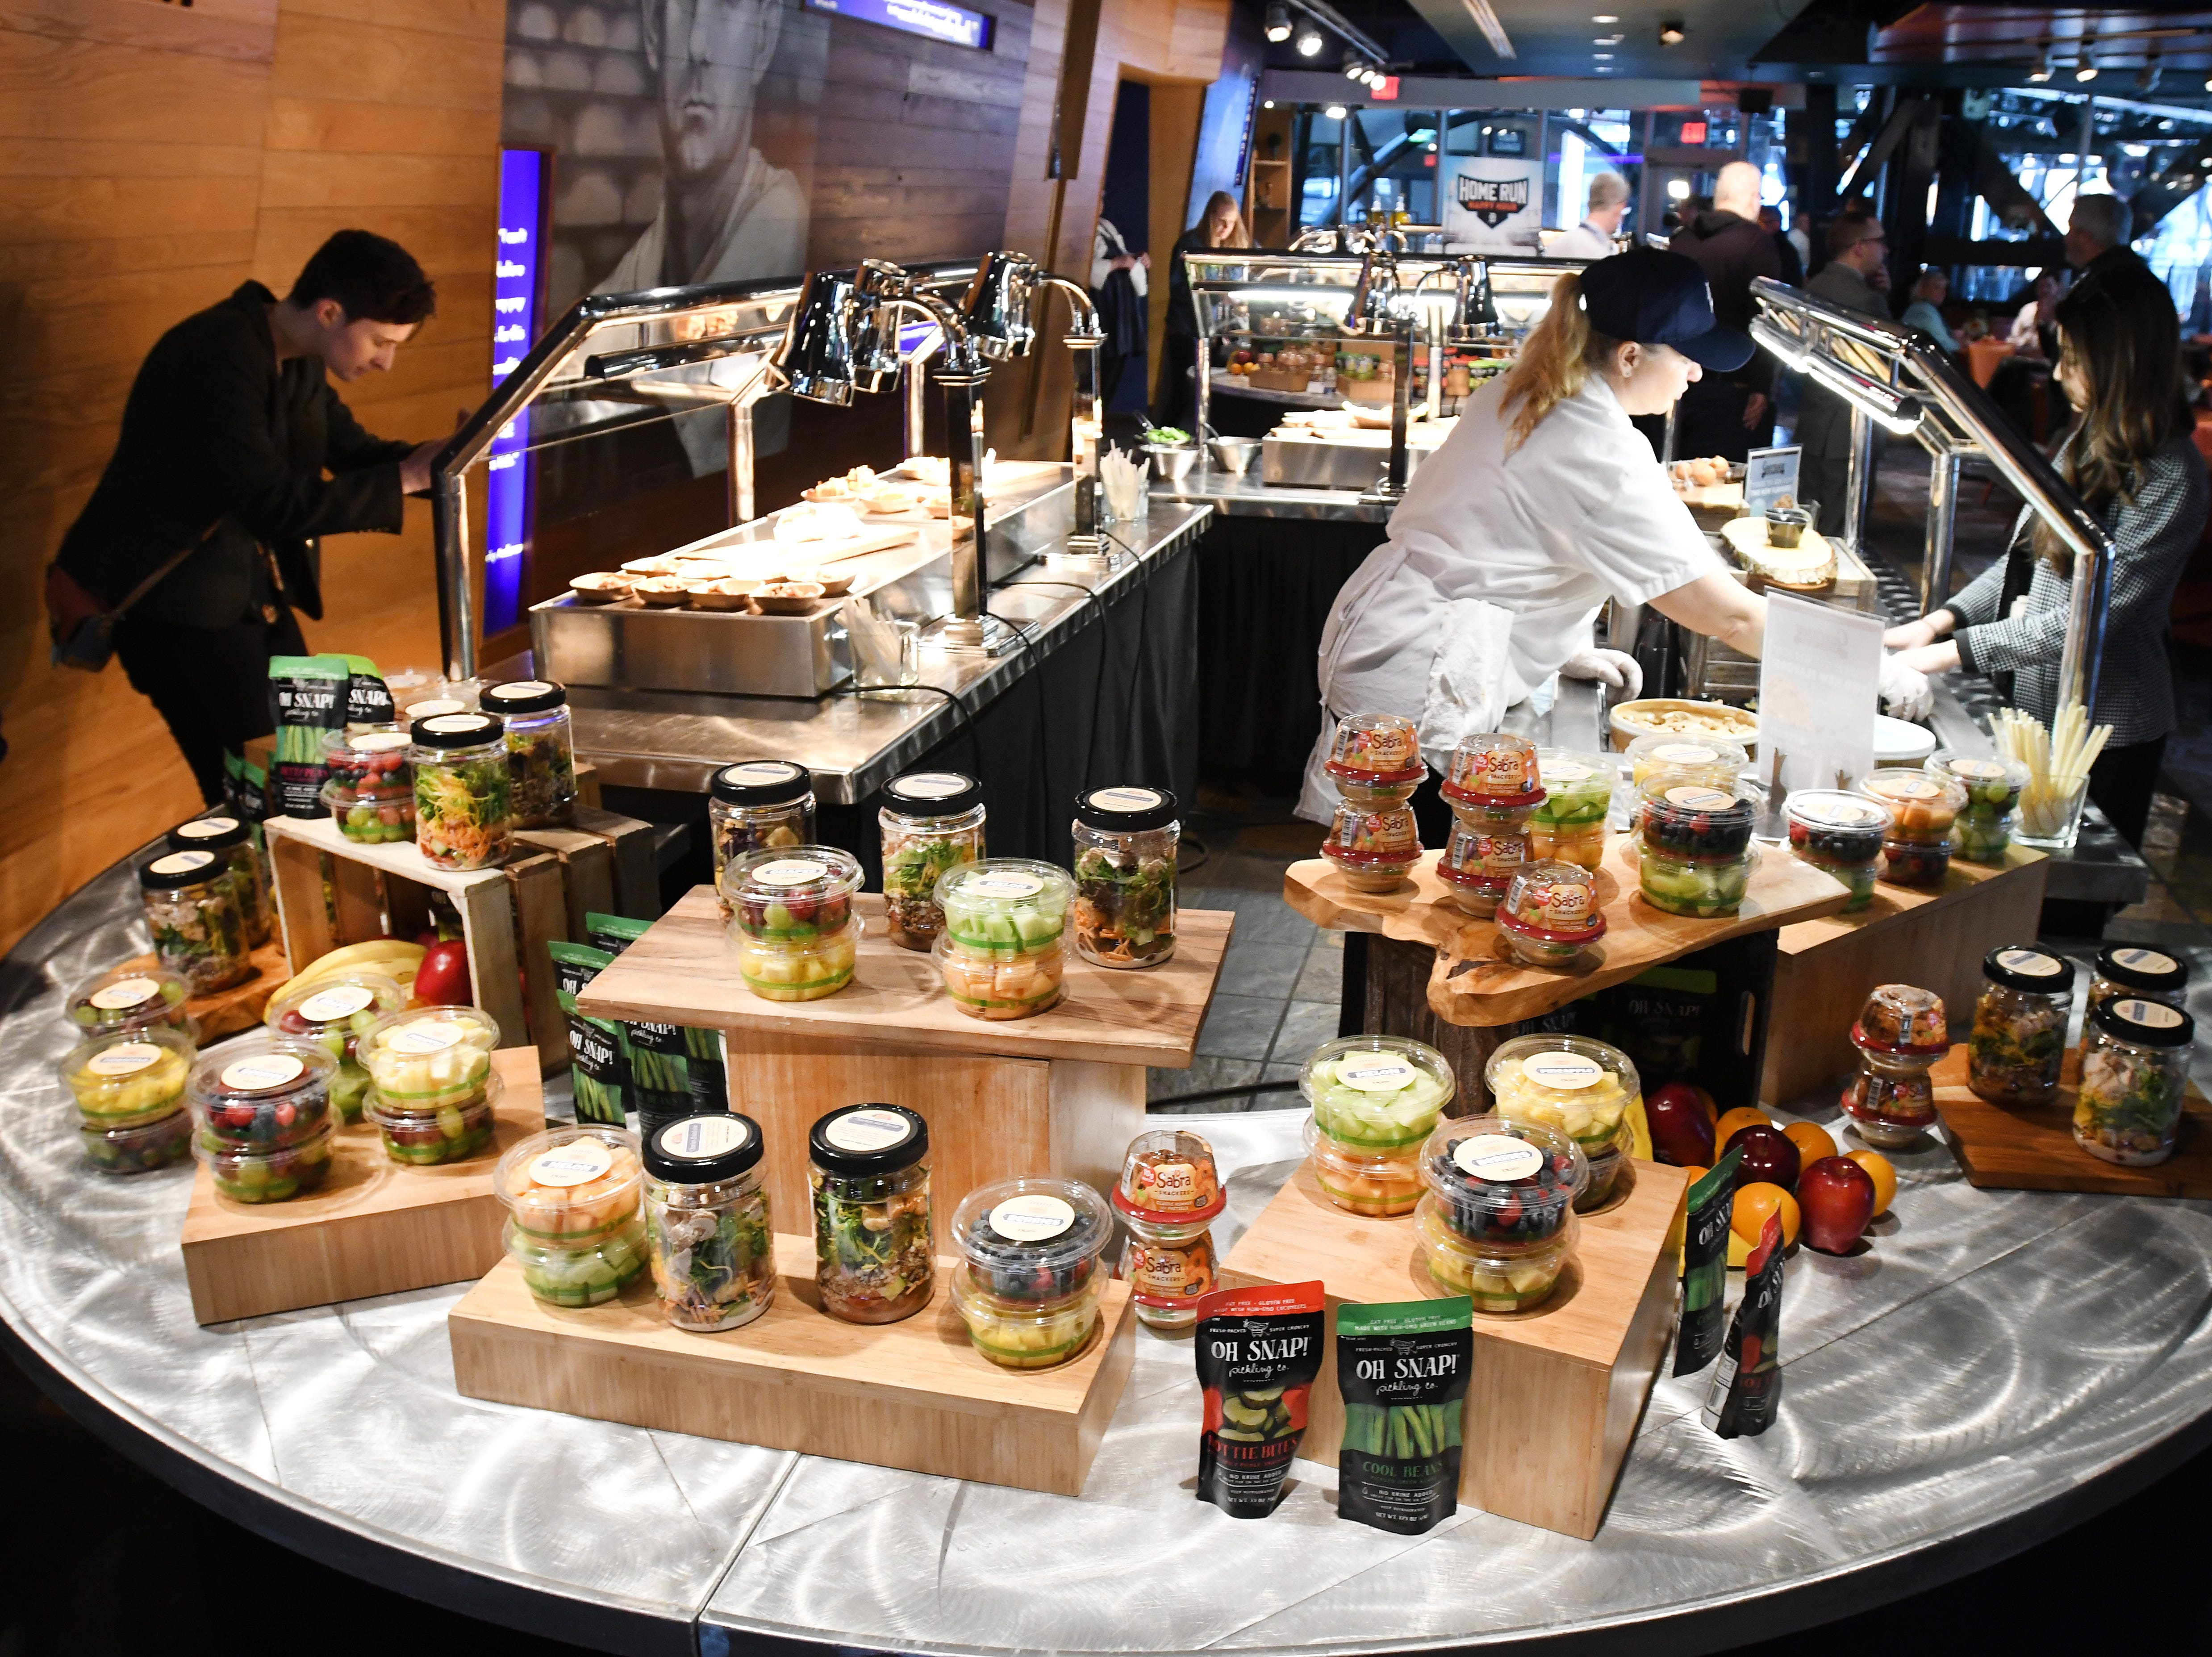 """""""Grab and Go"""" section with has Garden and Grain Salad Jars, fresh fruit cups and new healthy packaged snacks. """"What's new at Comerica Park in 2019"""" food sampling event of new menu items at the Tiger Club at Comerica Park in Detroit, Michigan on March 21, 2019.  (Image by Daniel Mears / The Detroit News)"""